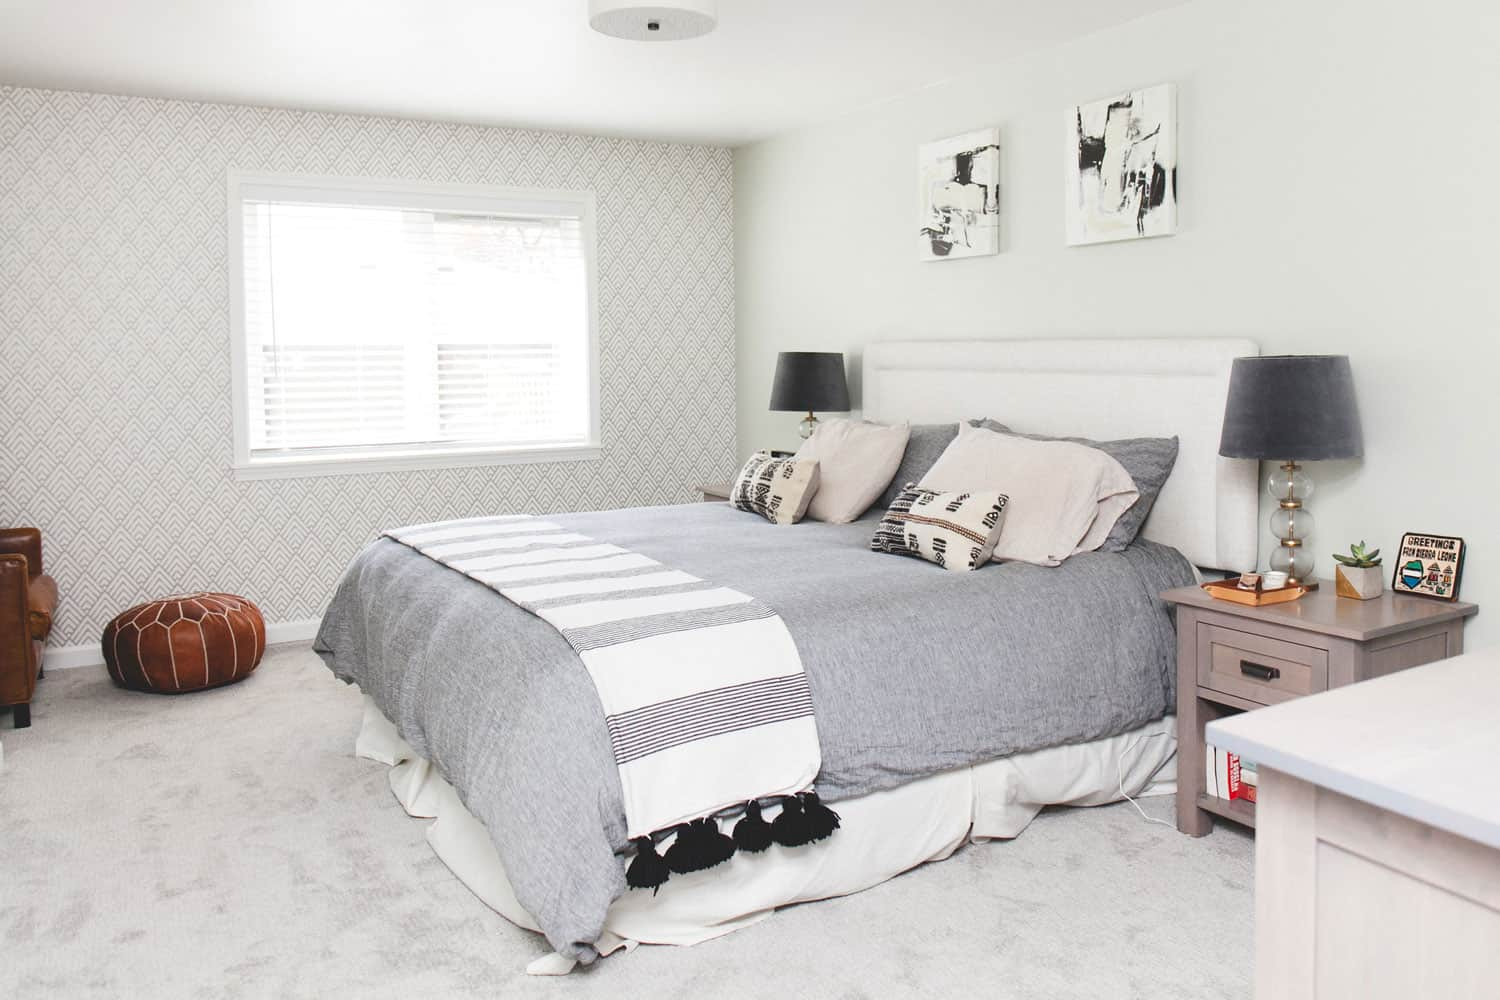 photo of bed with a gray duvet